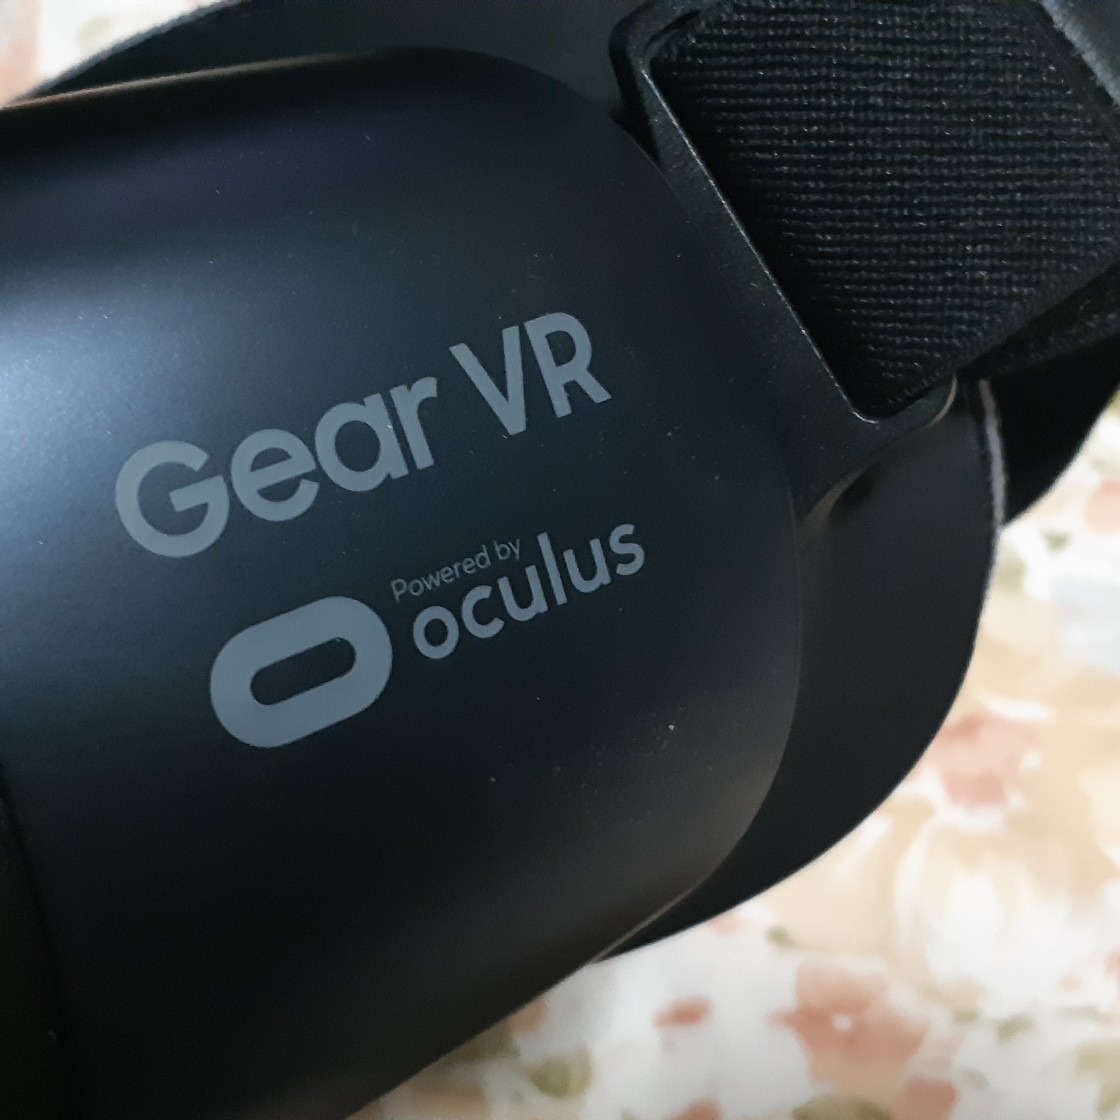 Gear VR. Powered by oculus image